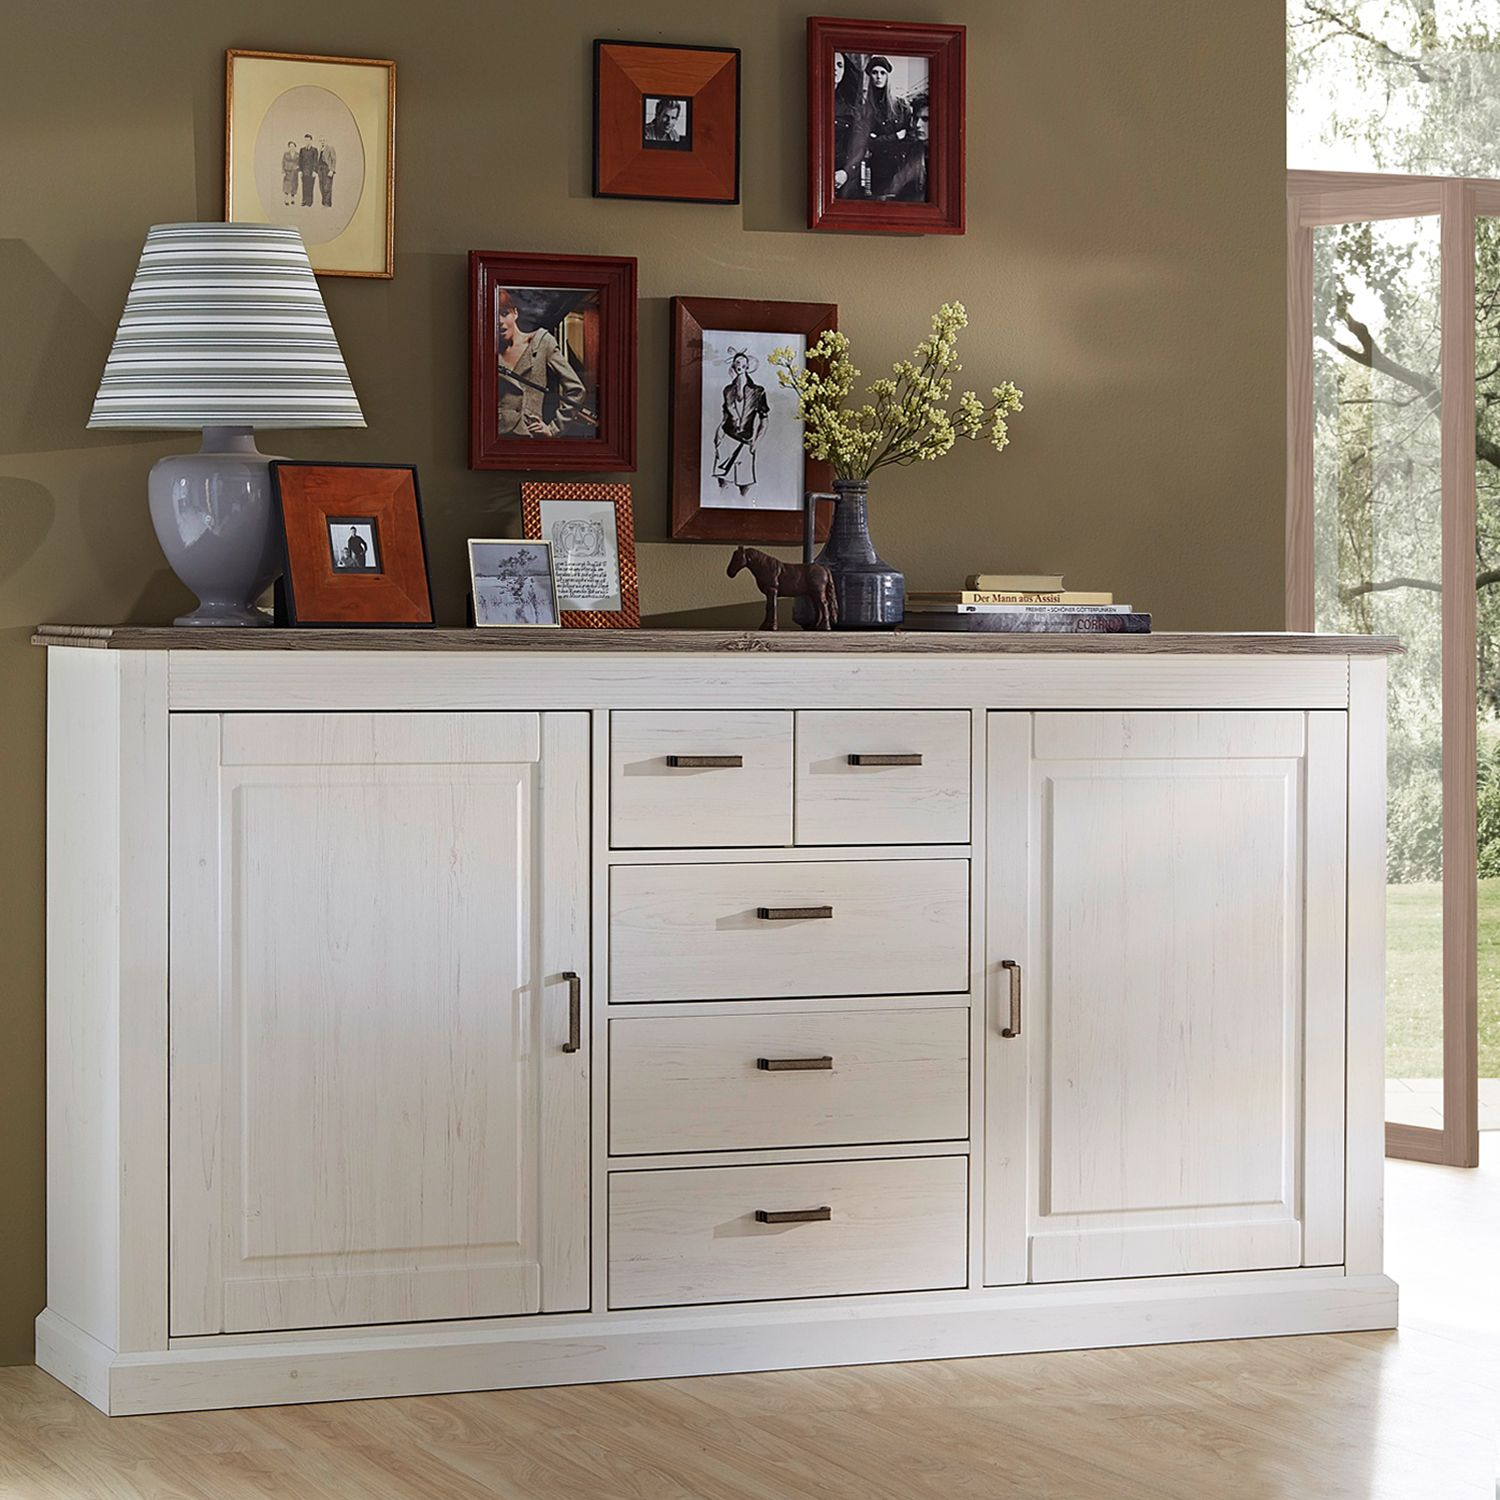 home24 Sideboard Cuzu